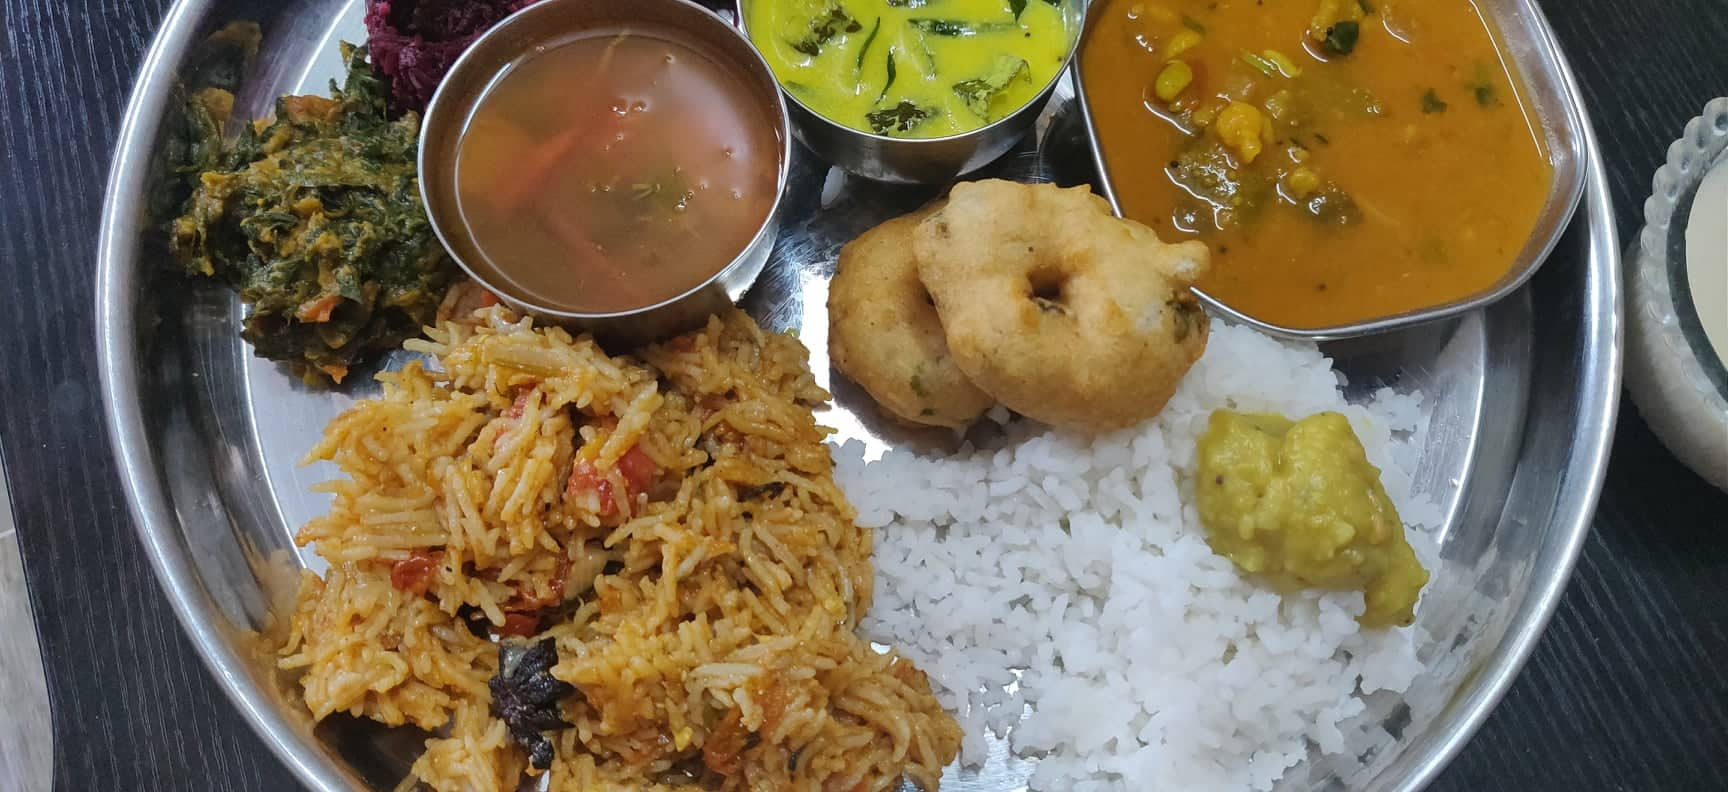 south_indian_special_meals - 82162058_533273167533192_9065078345691037696_n